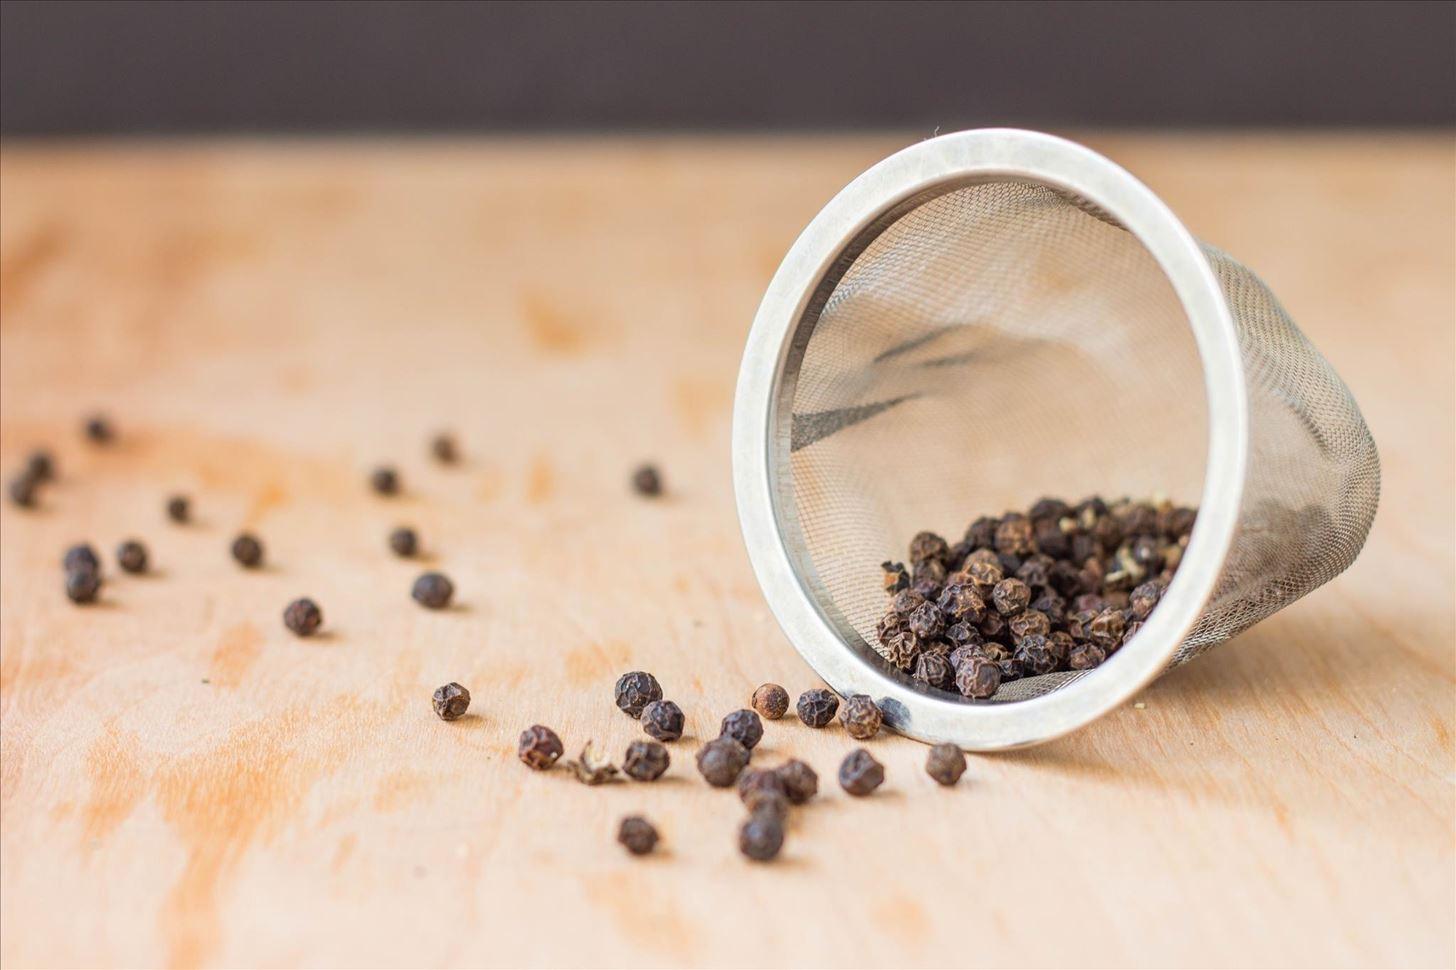 Black Peppercorns Make a Surprisingly Delicious Tea